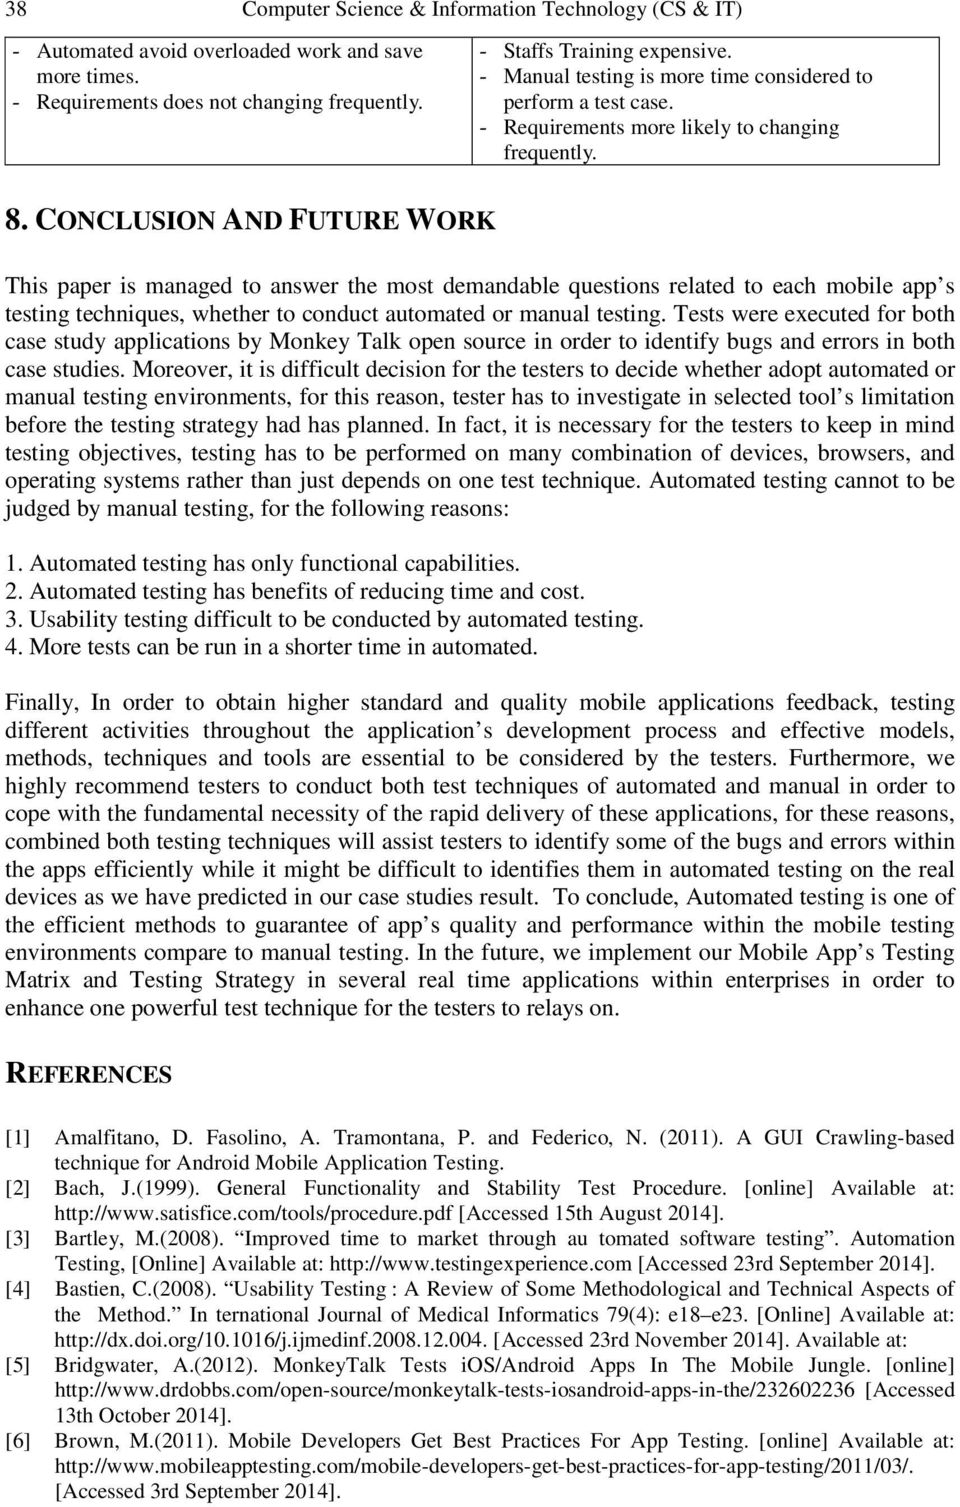 CONCLUSION AND FUTURE WORK This paper is managed to answer the most demandable questions related to each mobile app s testing techniques, whether to conduct automated or manual testing.